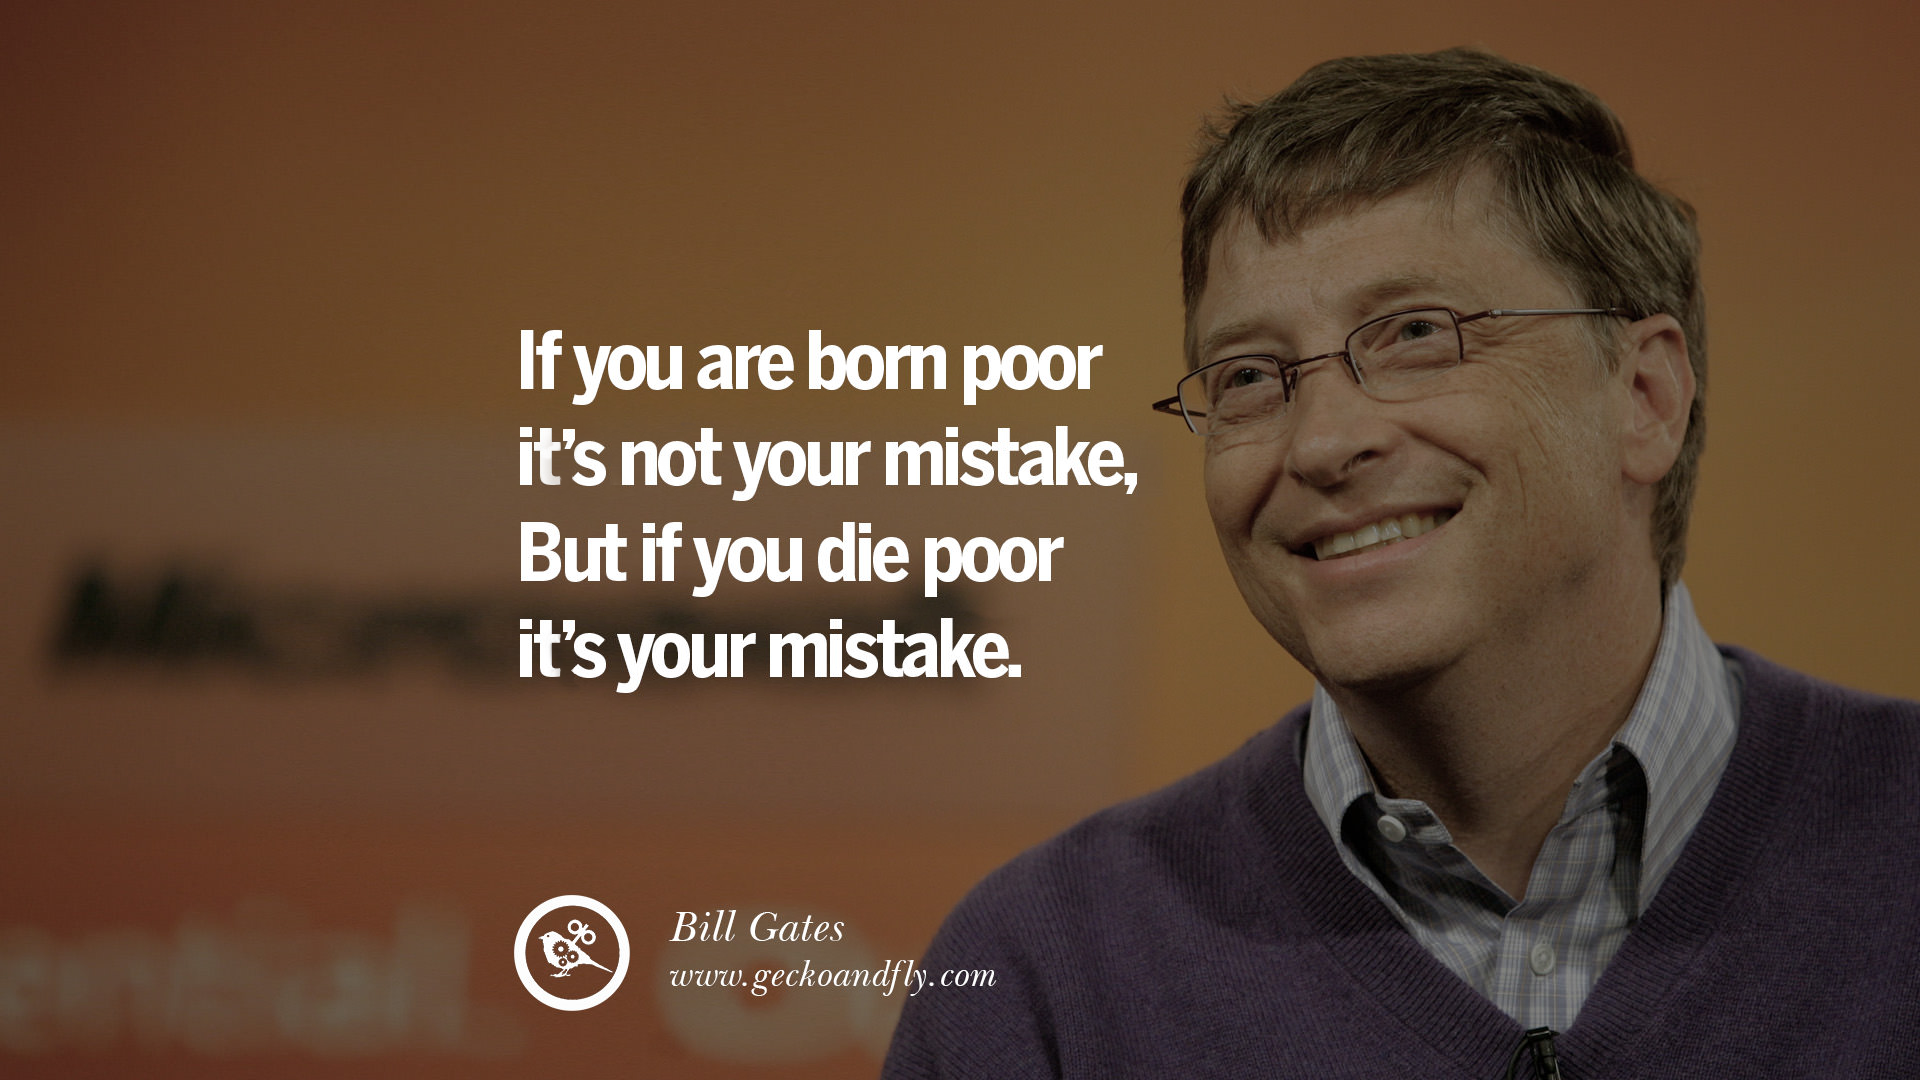 What can we learn from Bill Gates, the world's richest man?